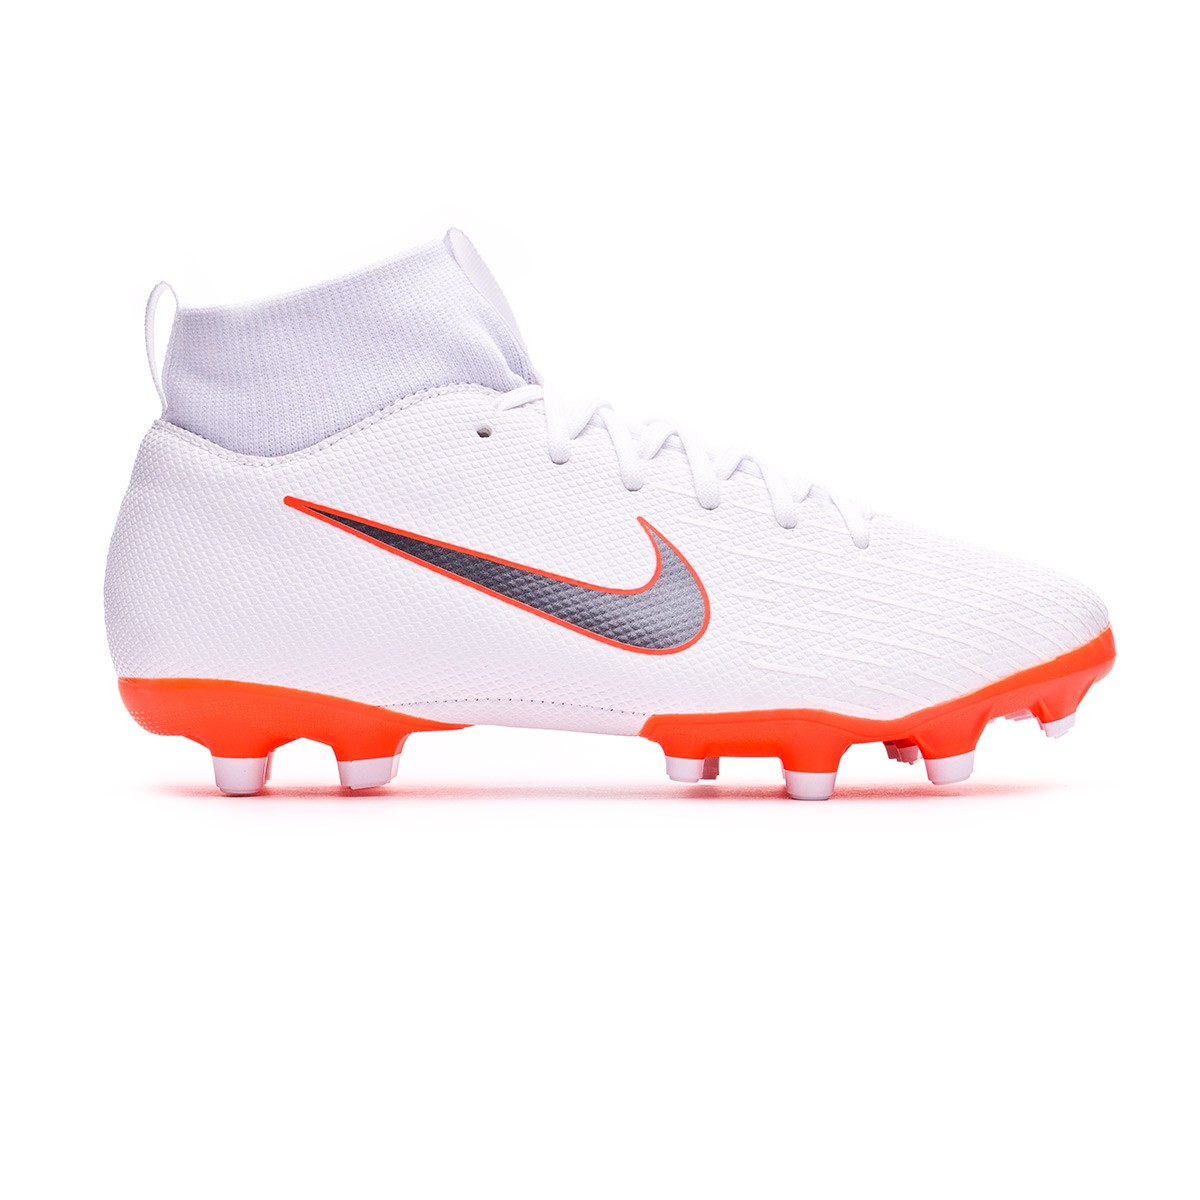 new product 7cb85 381d5 Chuteira Nike Mercurial Superfly VI Academy GS MG Crianças White-Metallic  cool grey-Total orange - Loja de futebol Fútbol Emotion